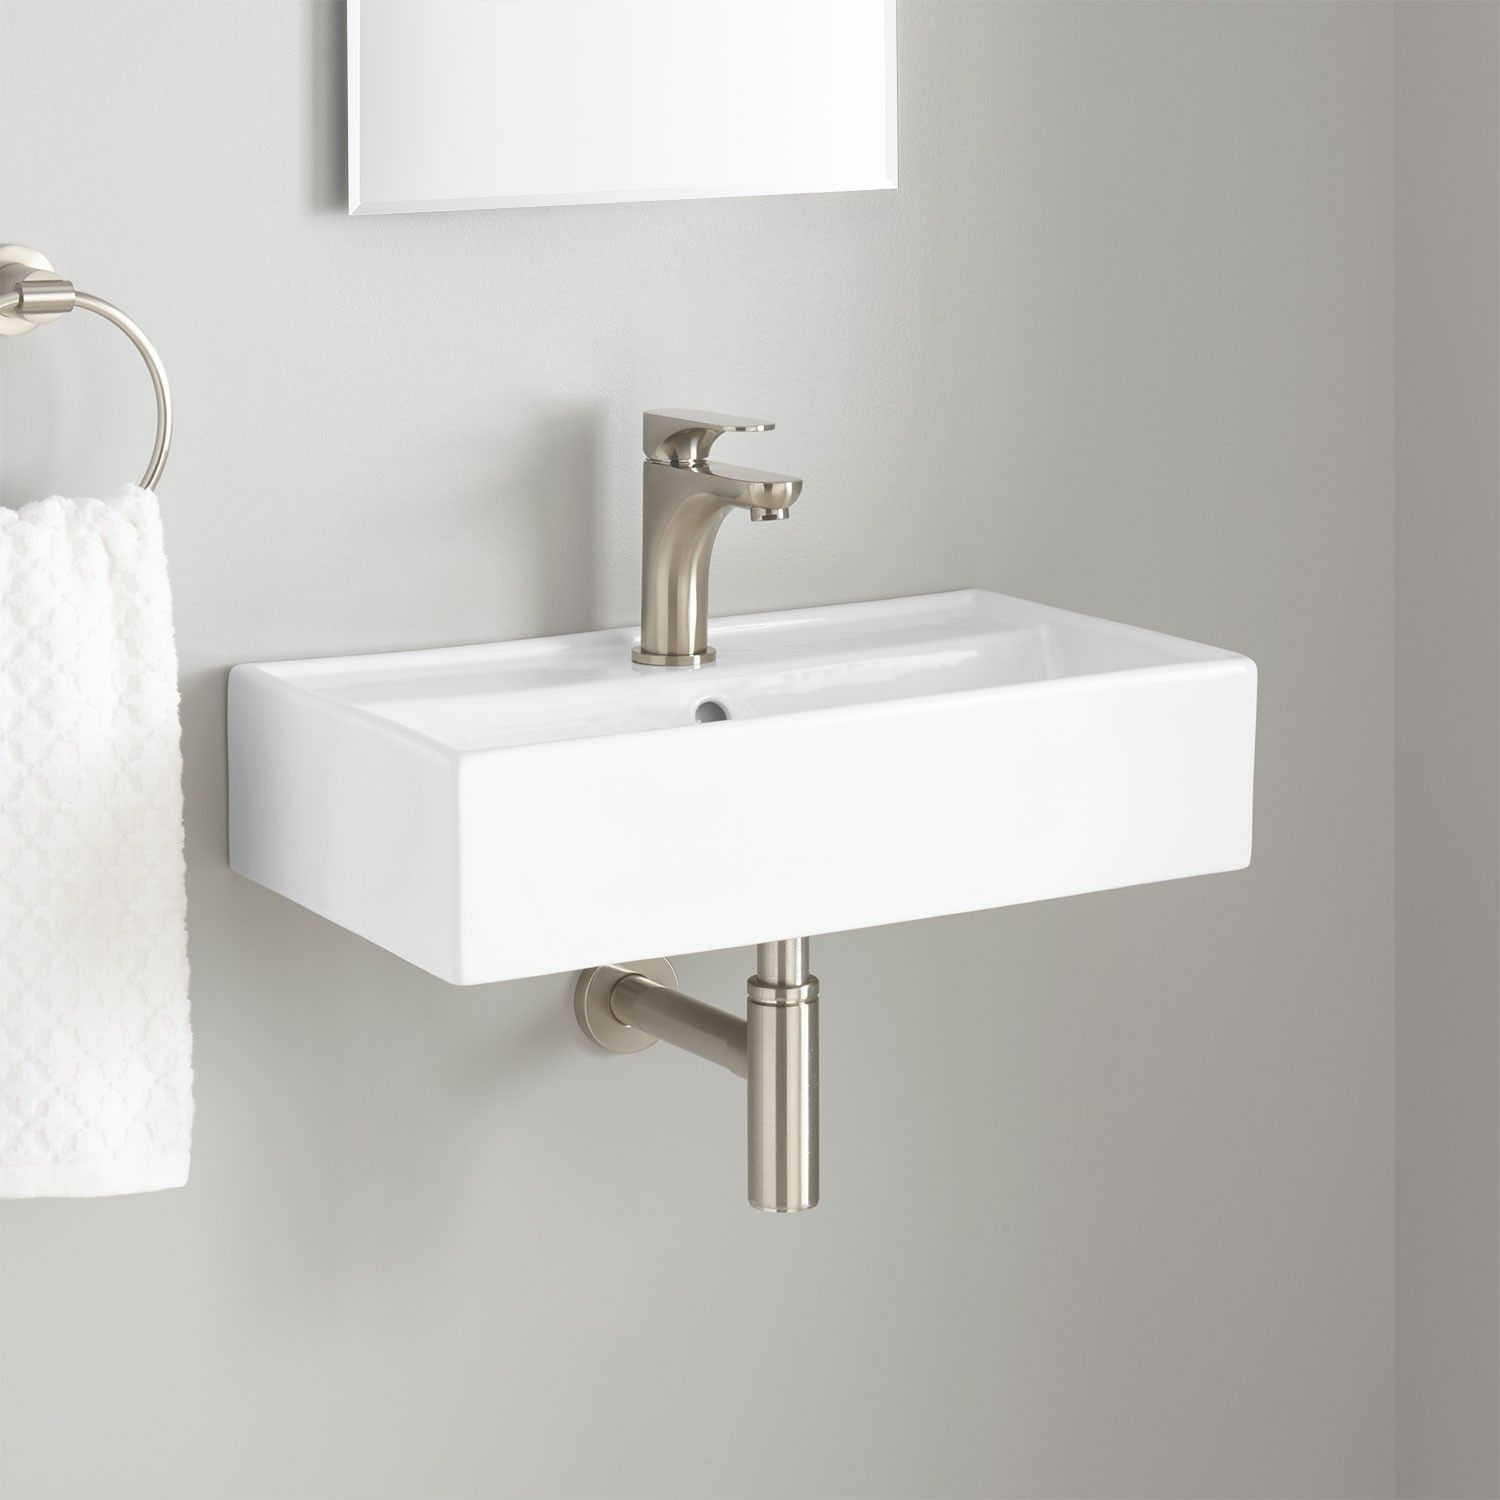 Magali Wall Mount Bathroom Sink Wall Mount Sinks Bathroom